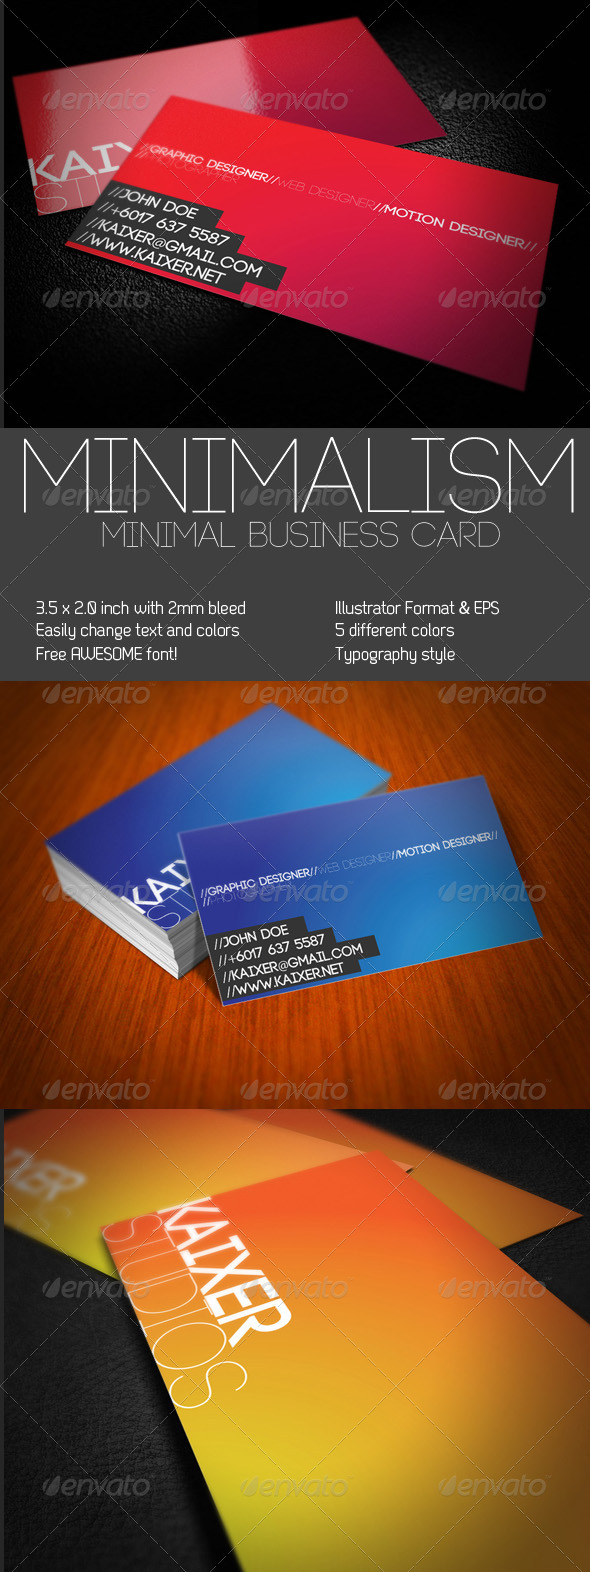 Minimal Style Business Card - Corporate Business Cards